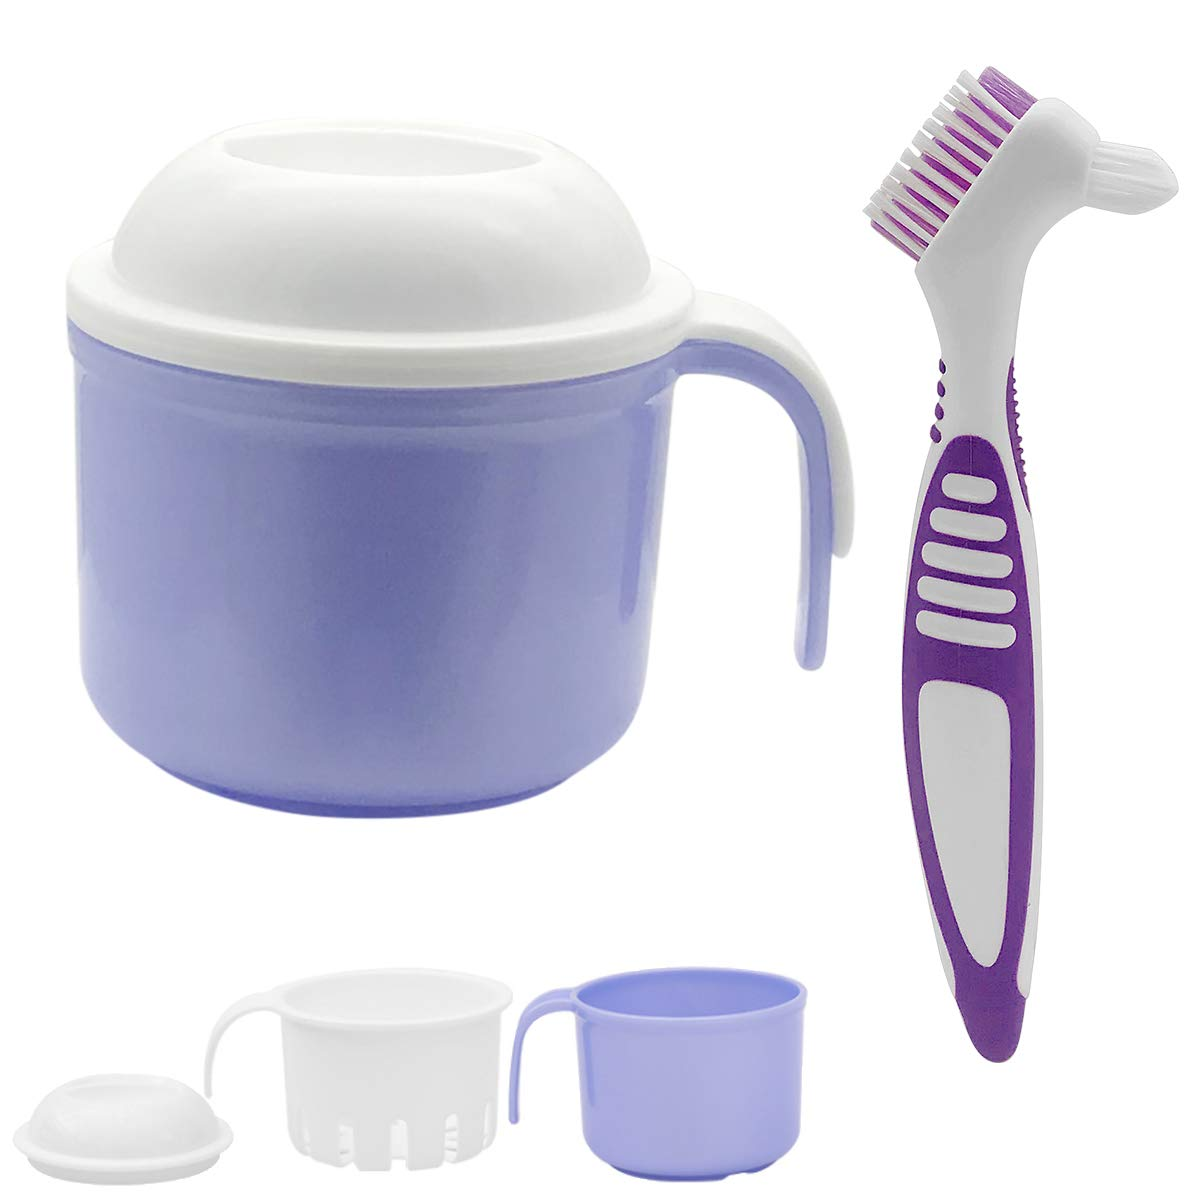 Denture Bath Cases Cleaner Brushes, Denture Holder Brush Retainer with Handle, Dentures Container with Removable Strainer Basket Holder : Beauty